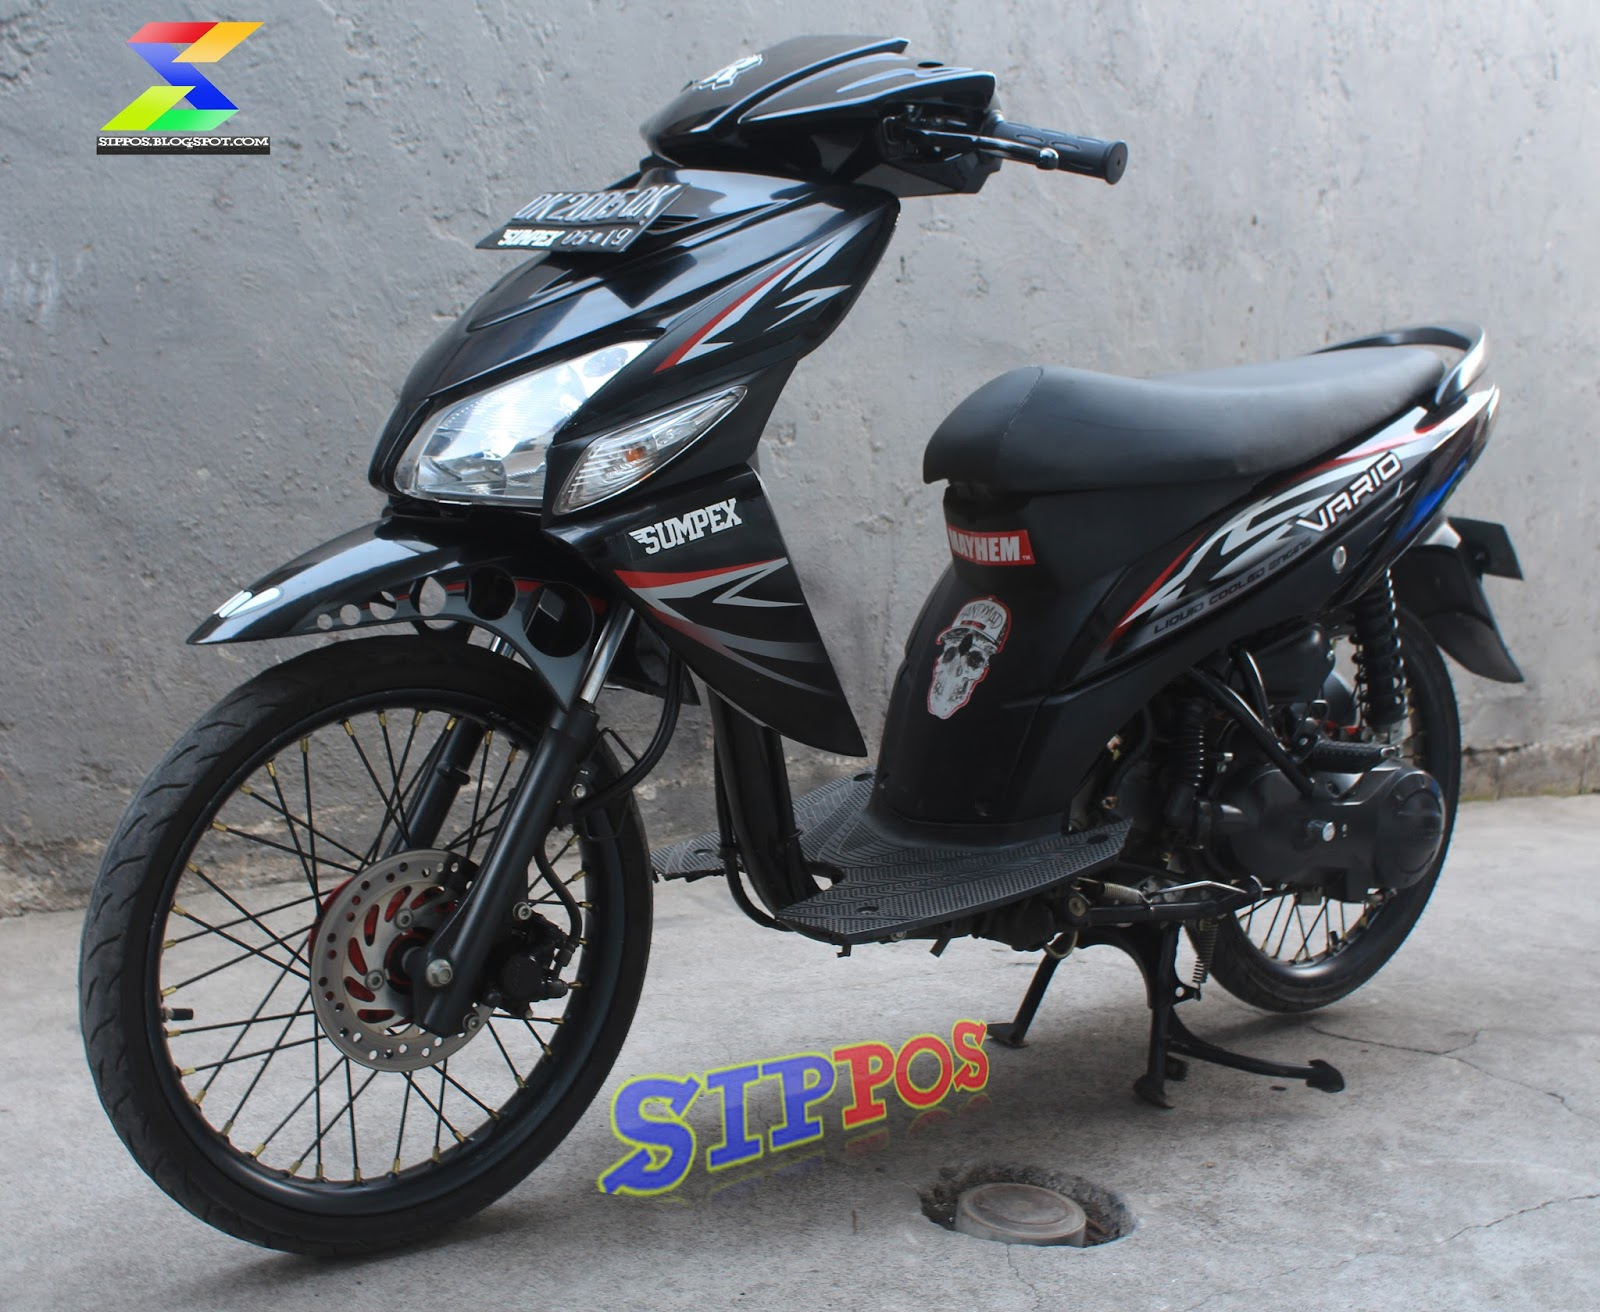 Gambar Modifikasi Motor Vario Cw Terkeren Earth Modification